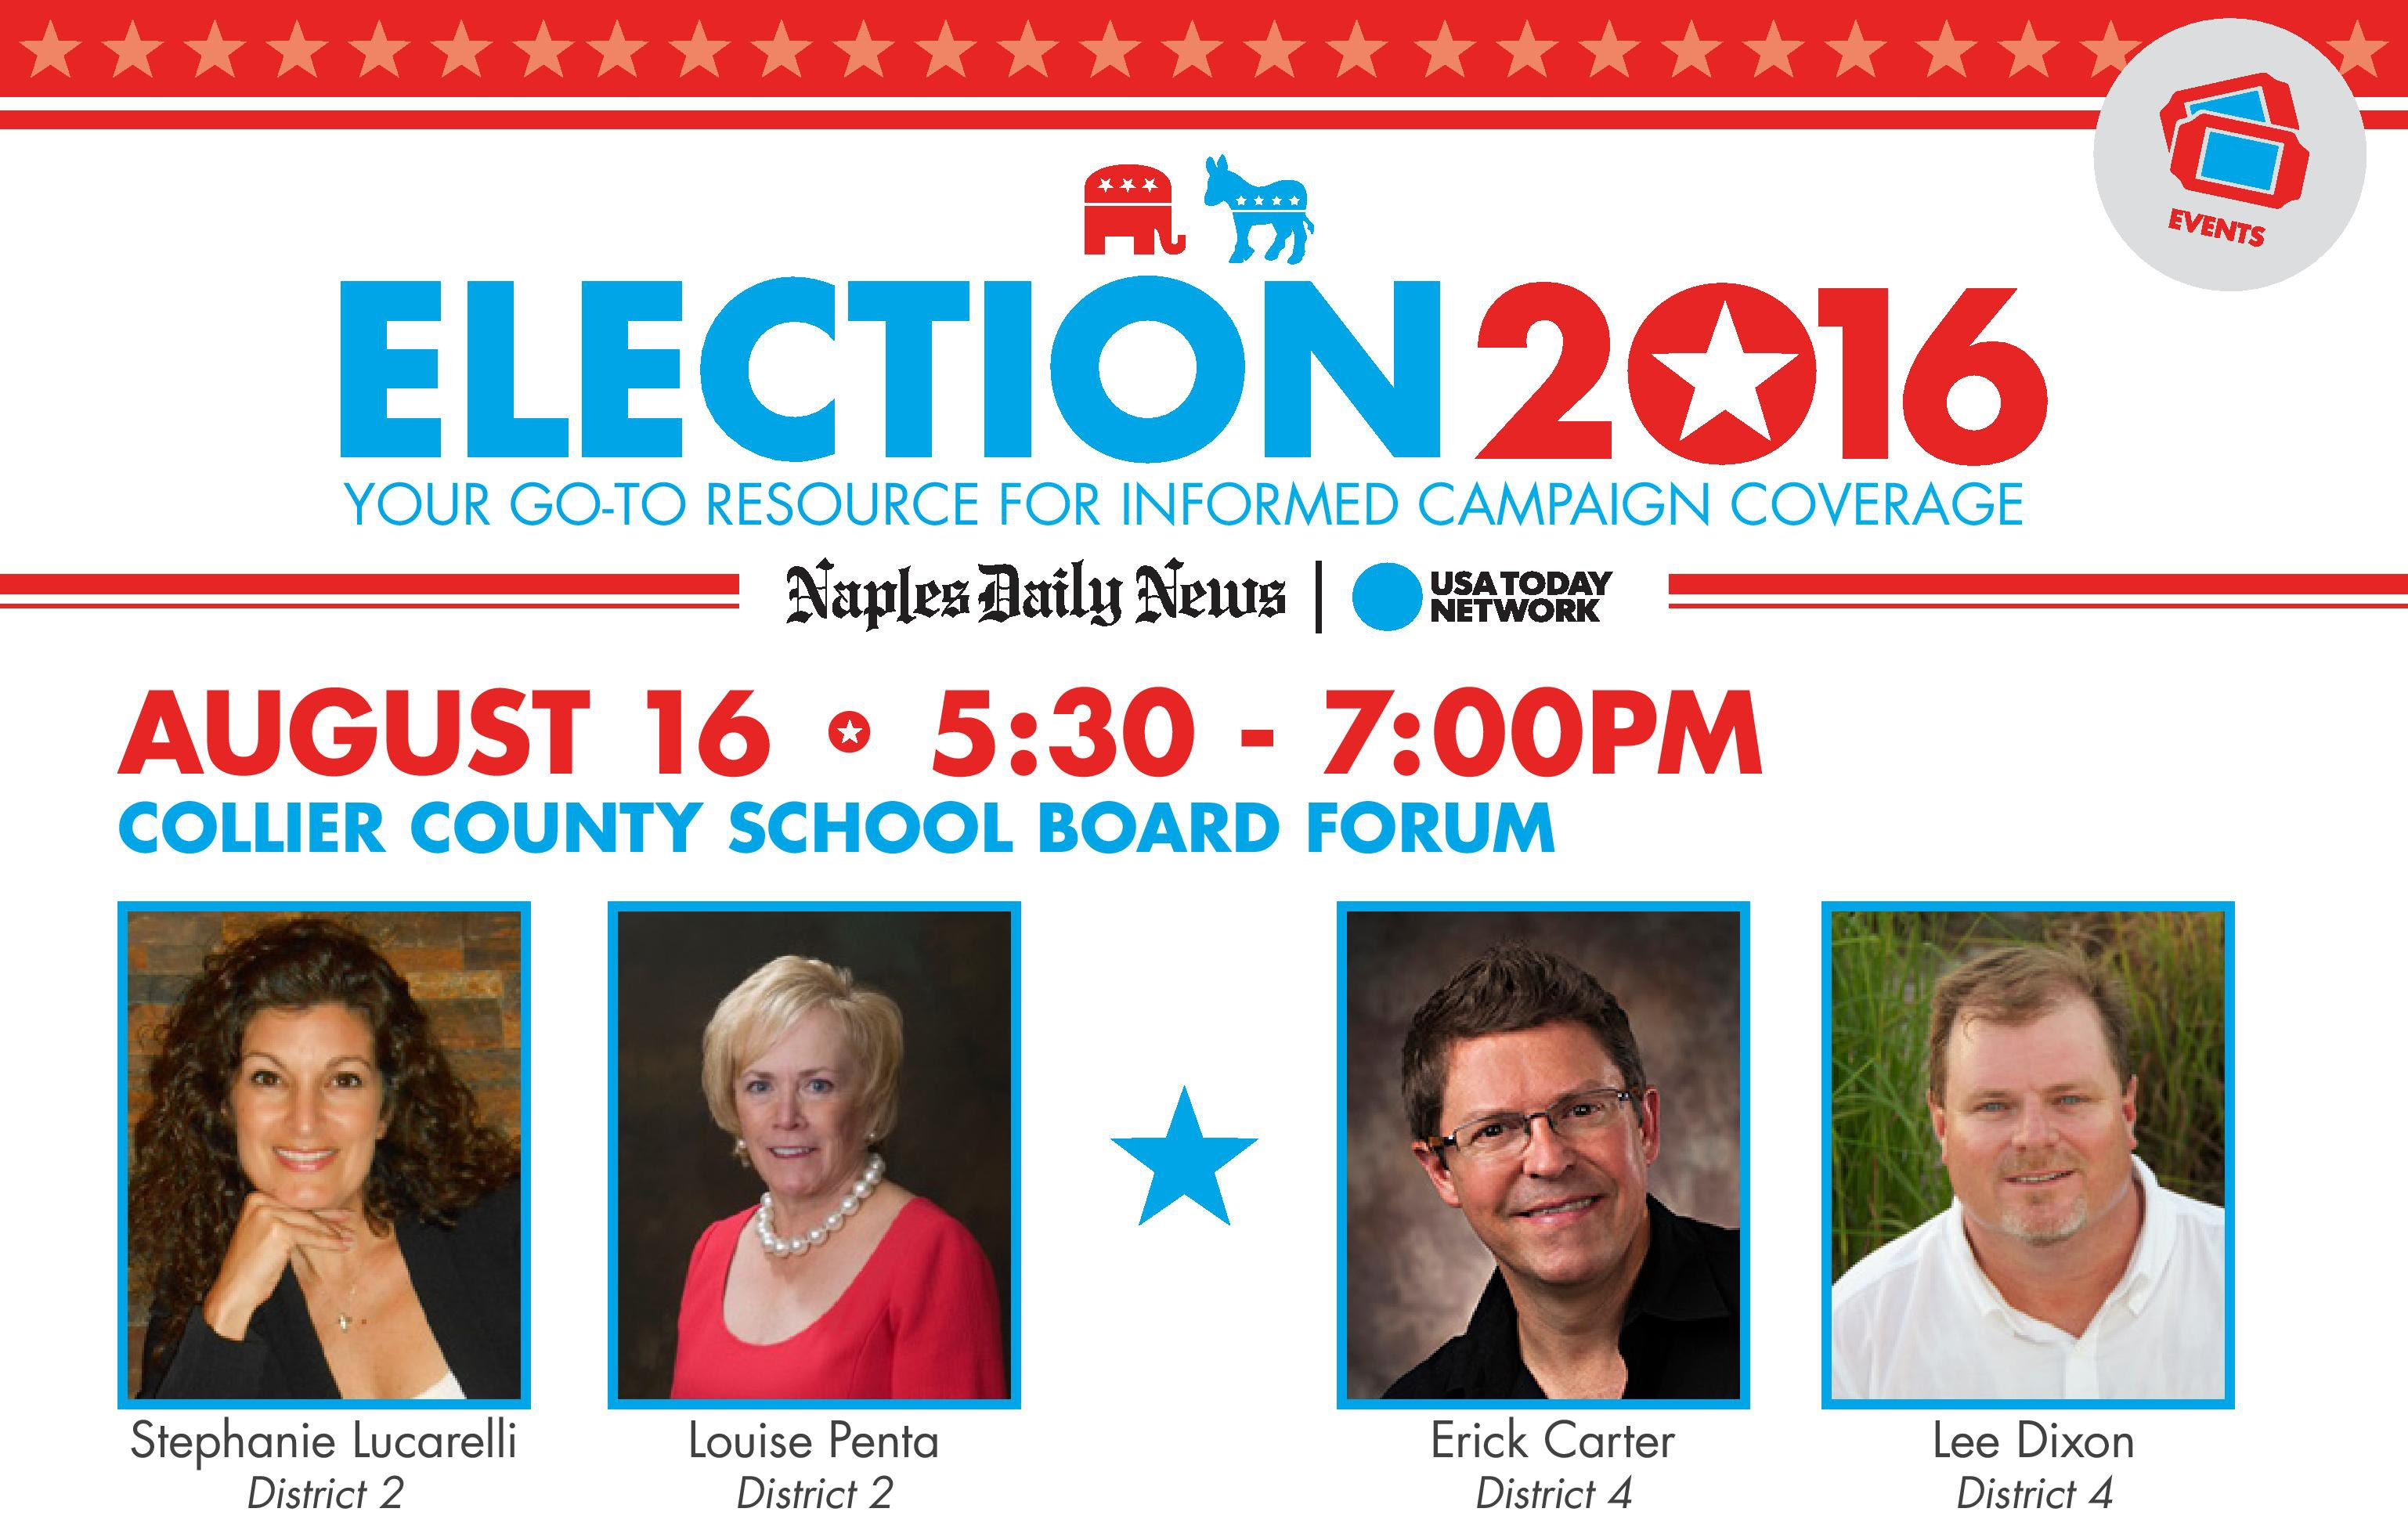 Election-2016-Collier-School-Board-Candidate-Forum